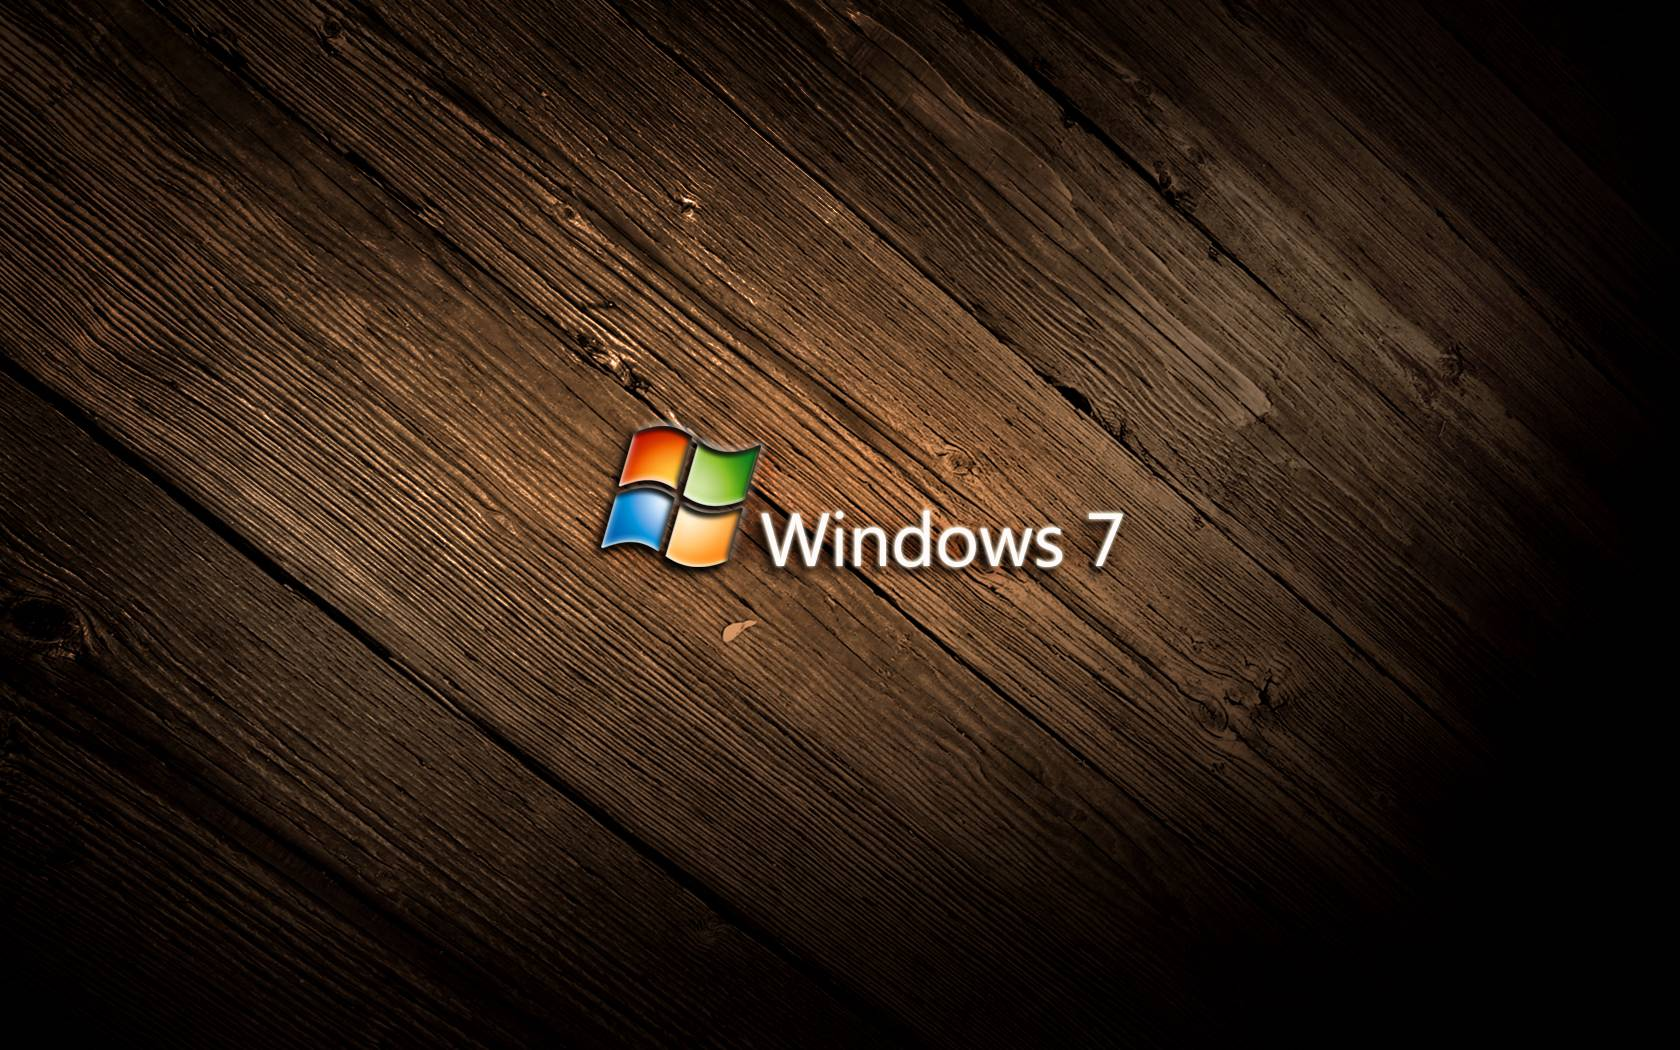 wall paper windows 7 - photo #22